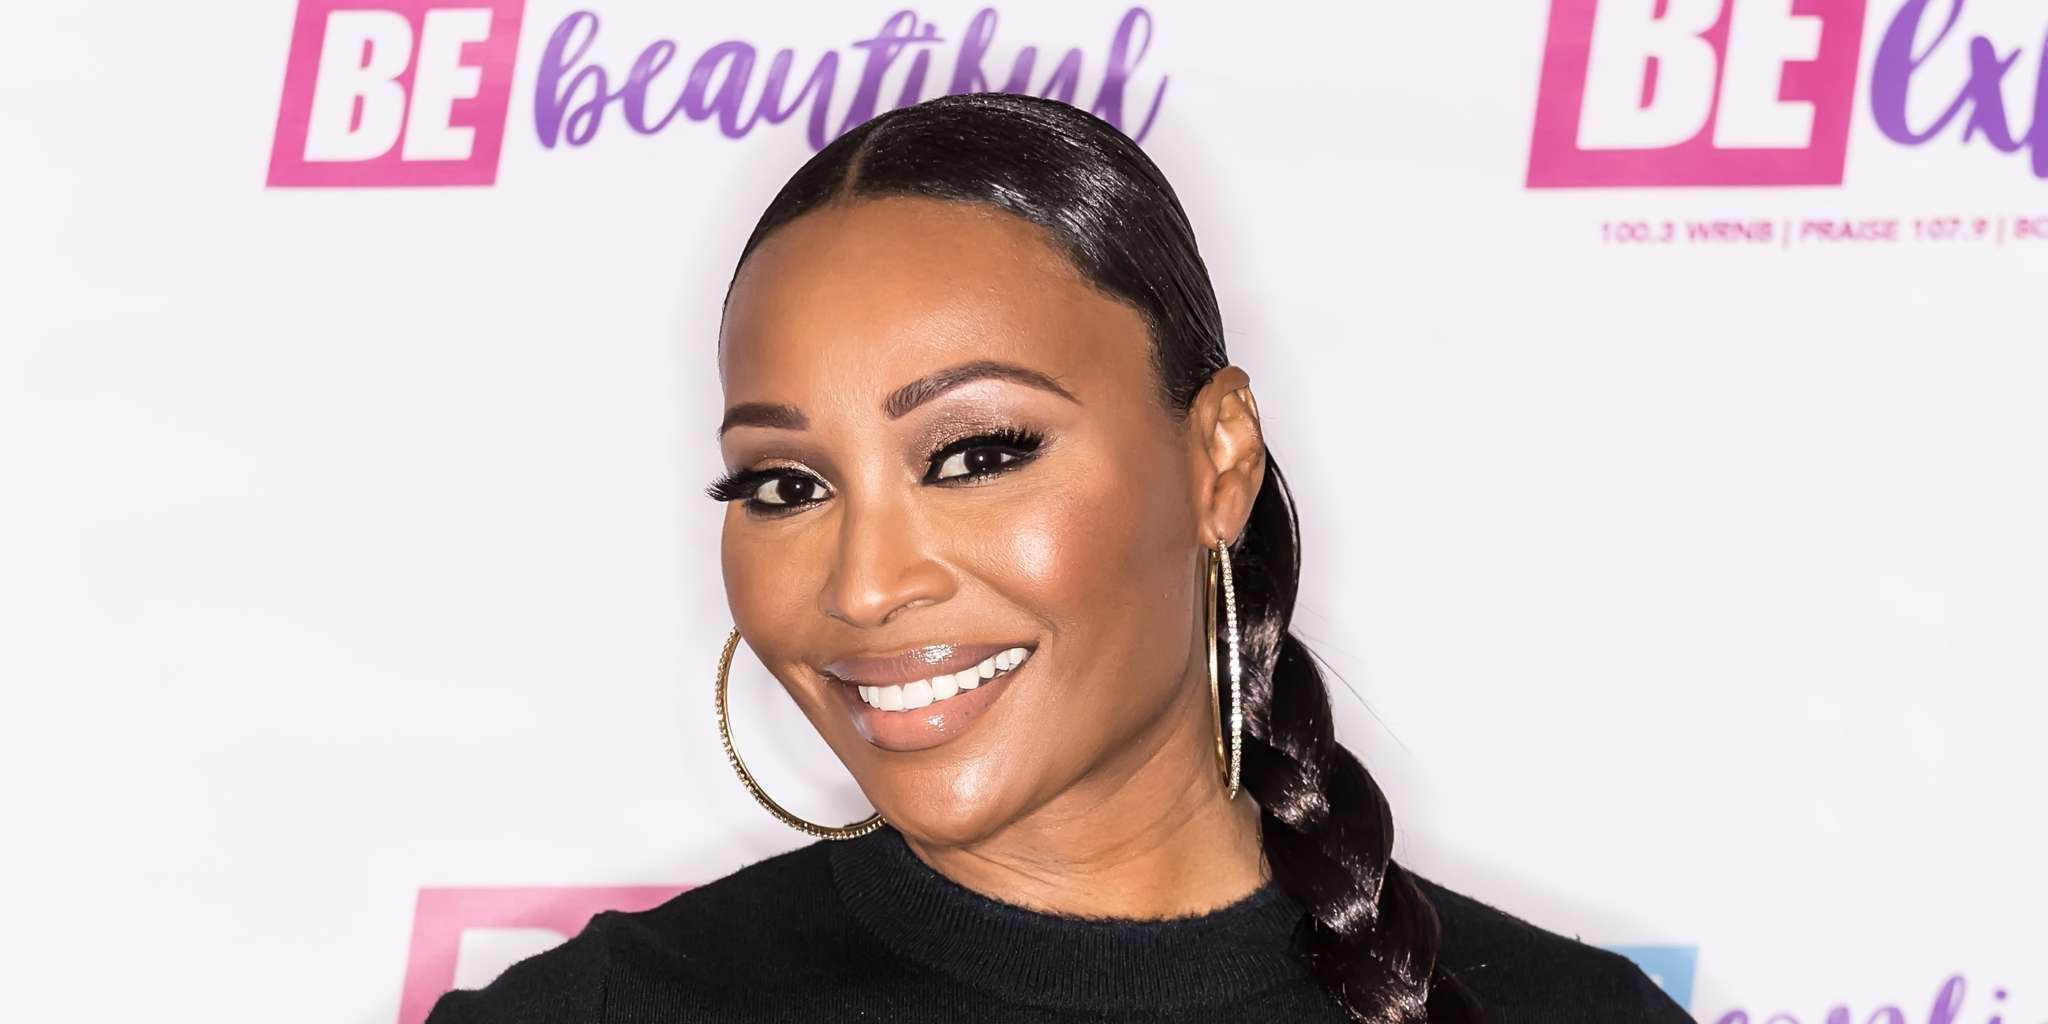 Cynthia Bailey Shows Off Her Toned Abs And Teaches Fans How To Get Their Tummy Makeover